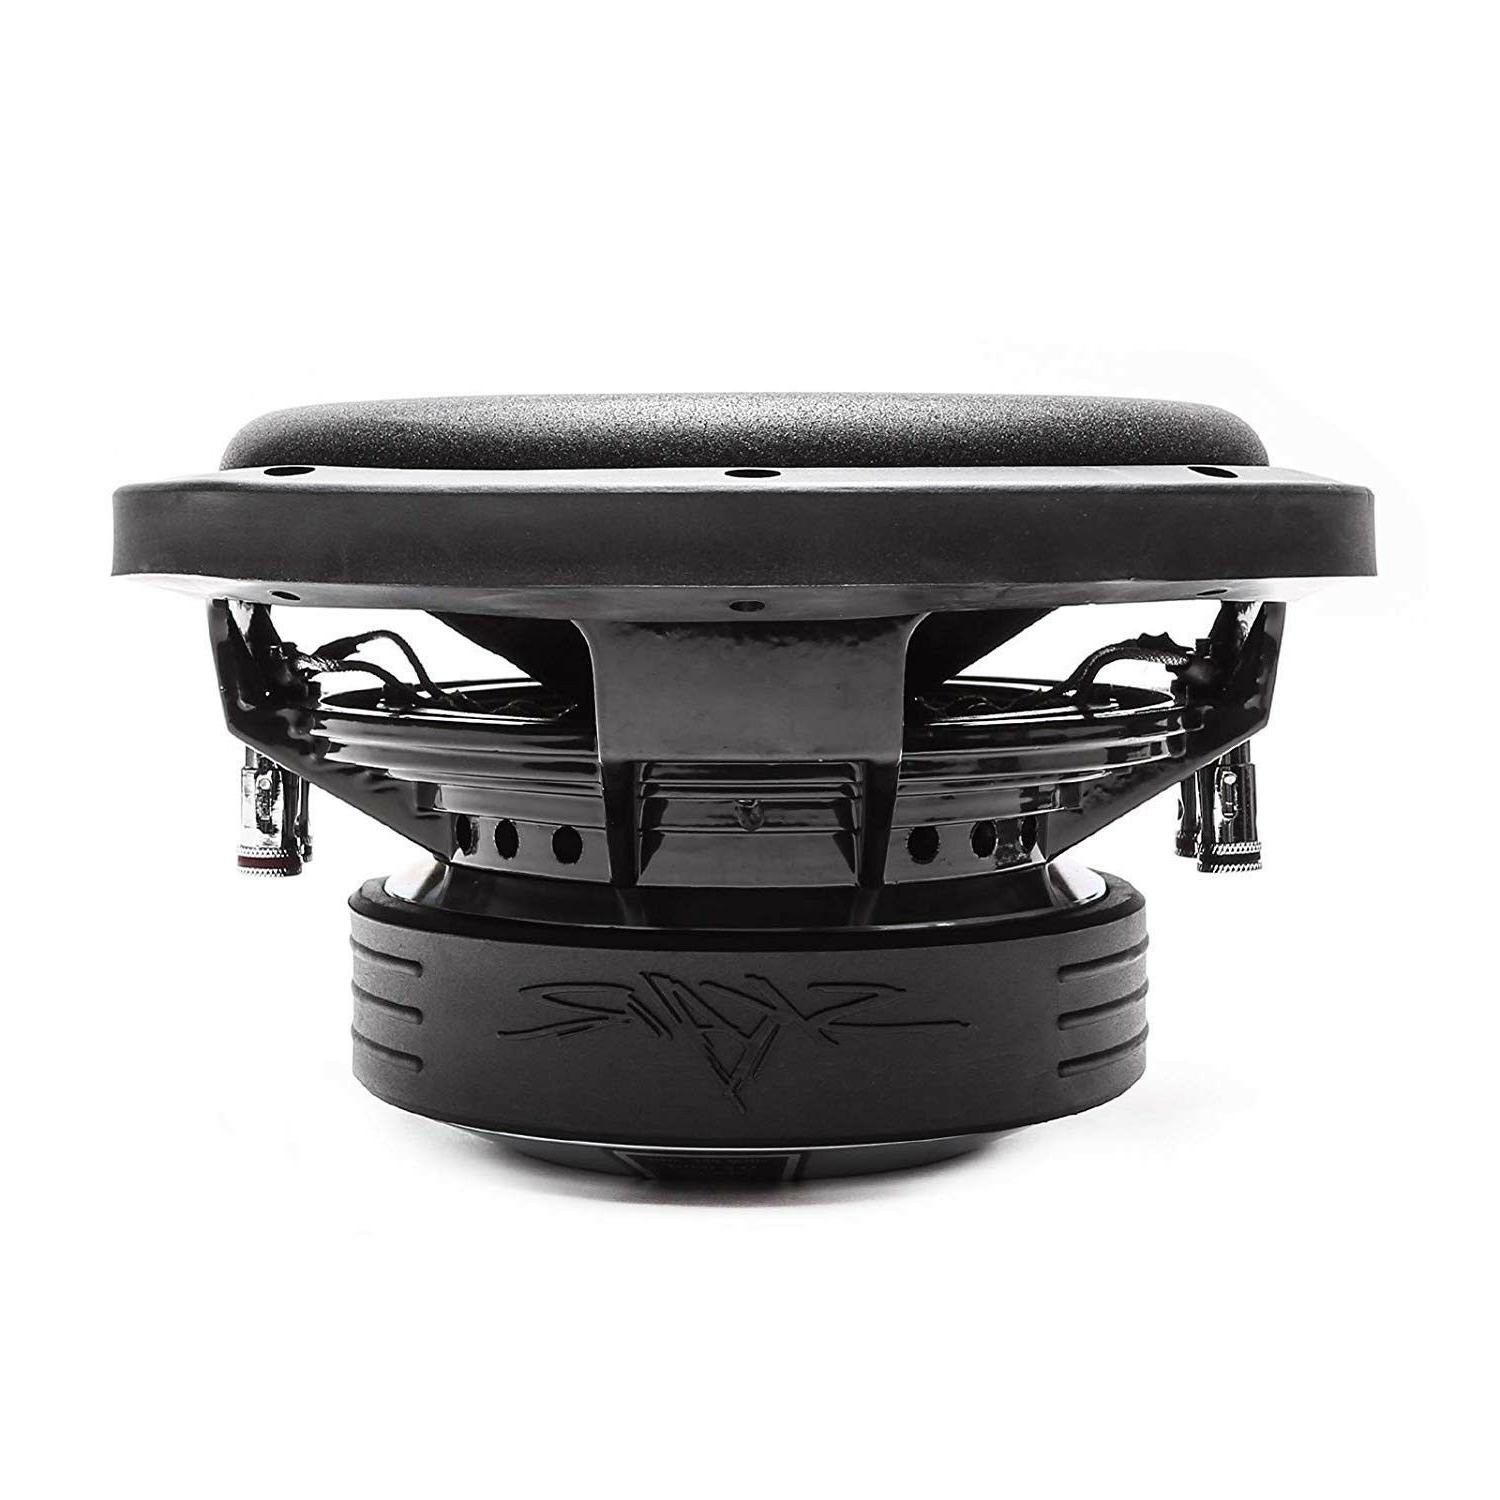 8 Subwoofer Speaker Shallow-Mount Dual 2 Car Power